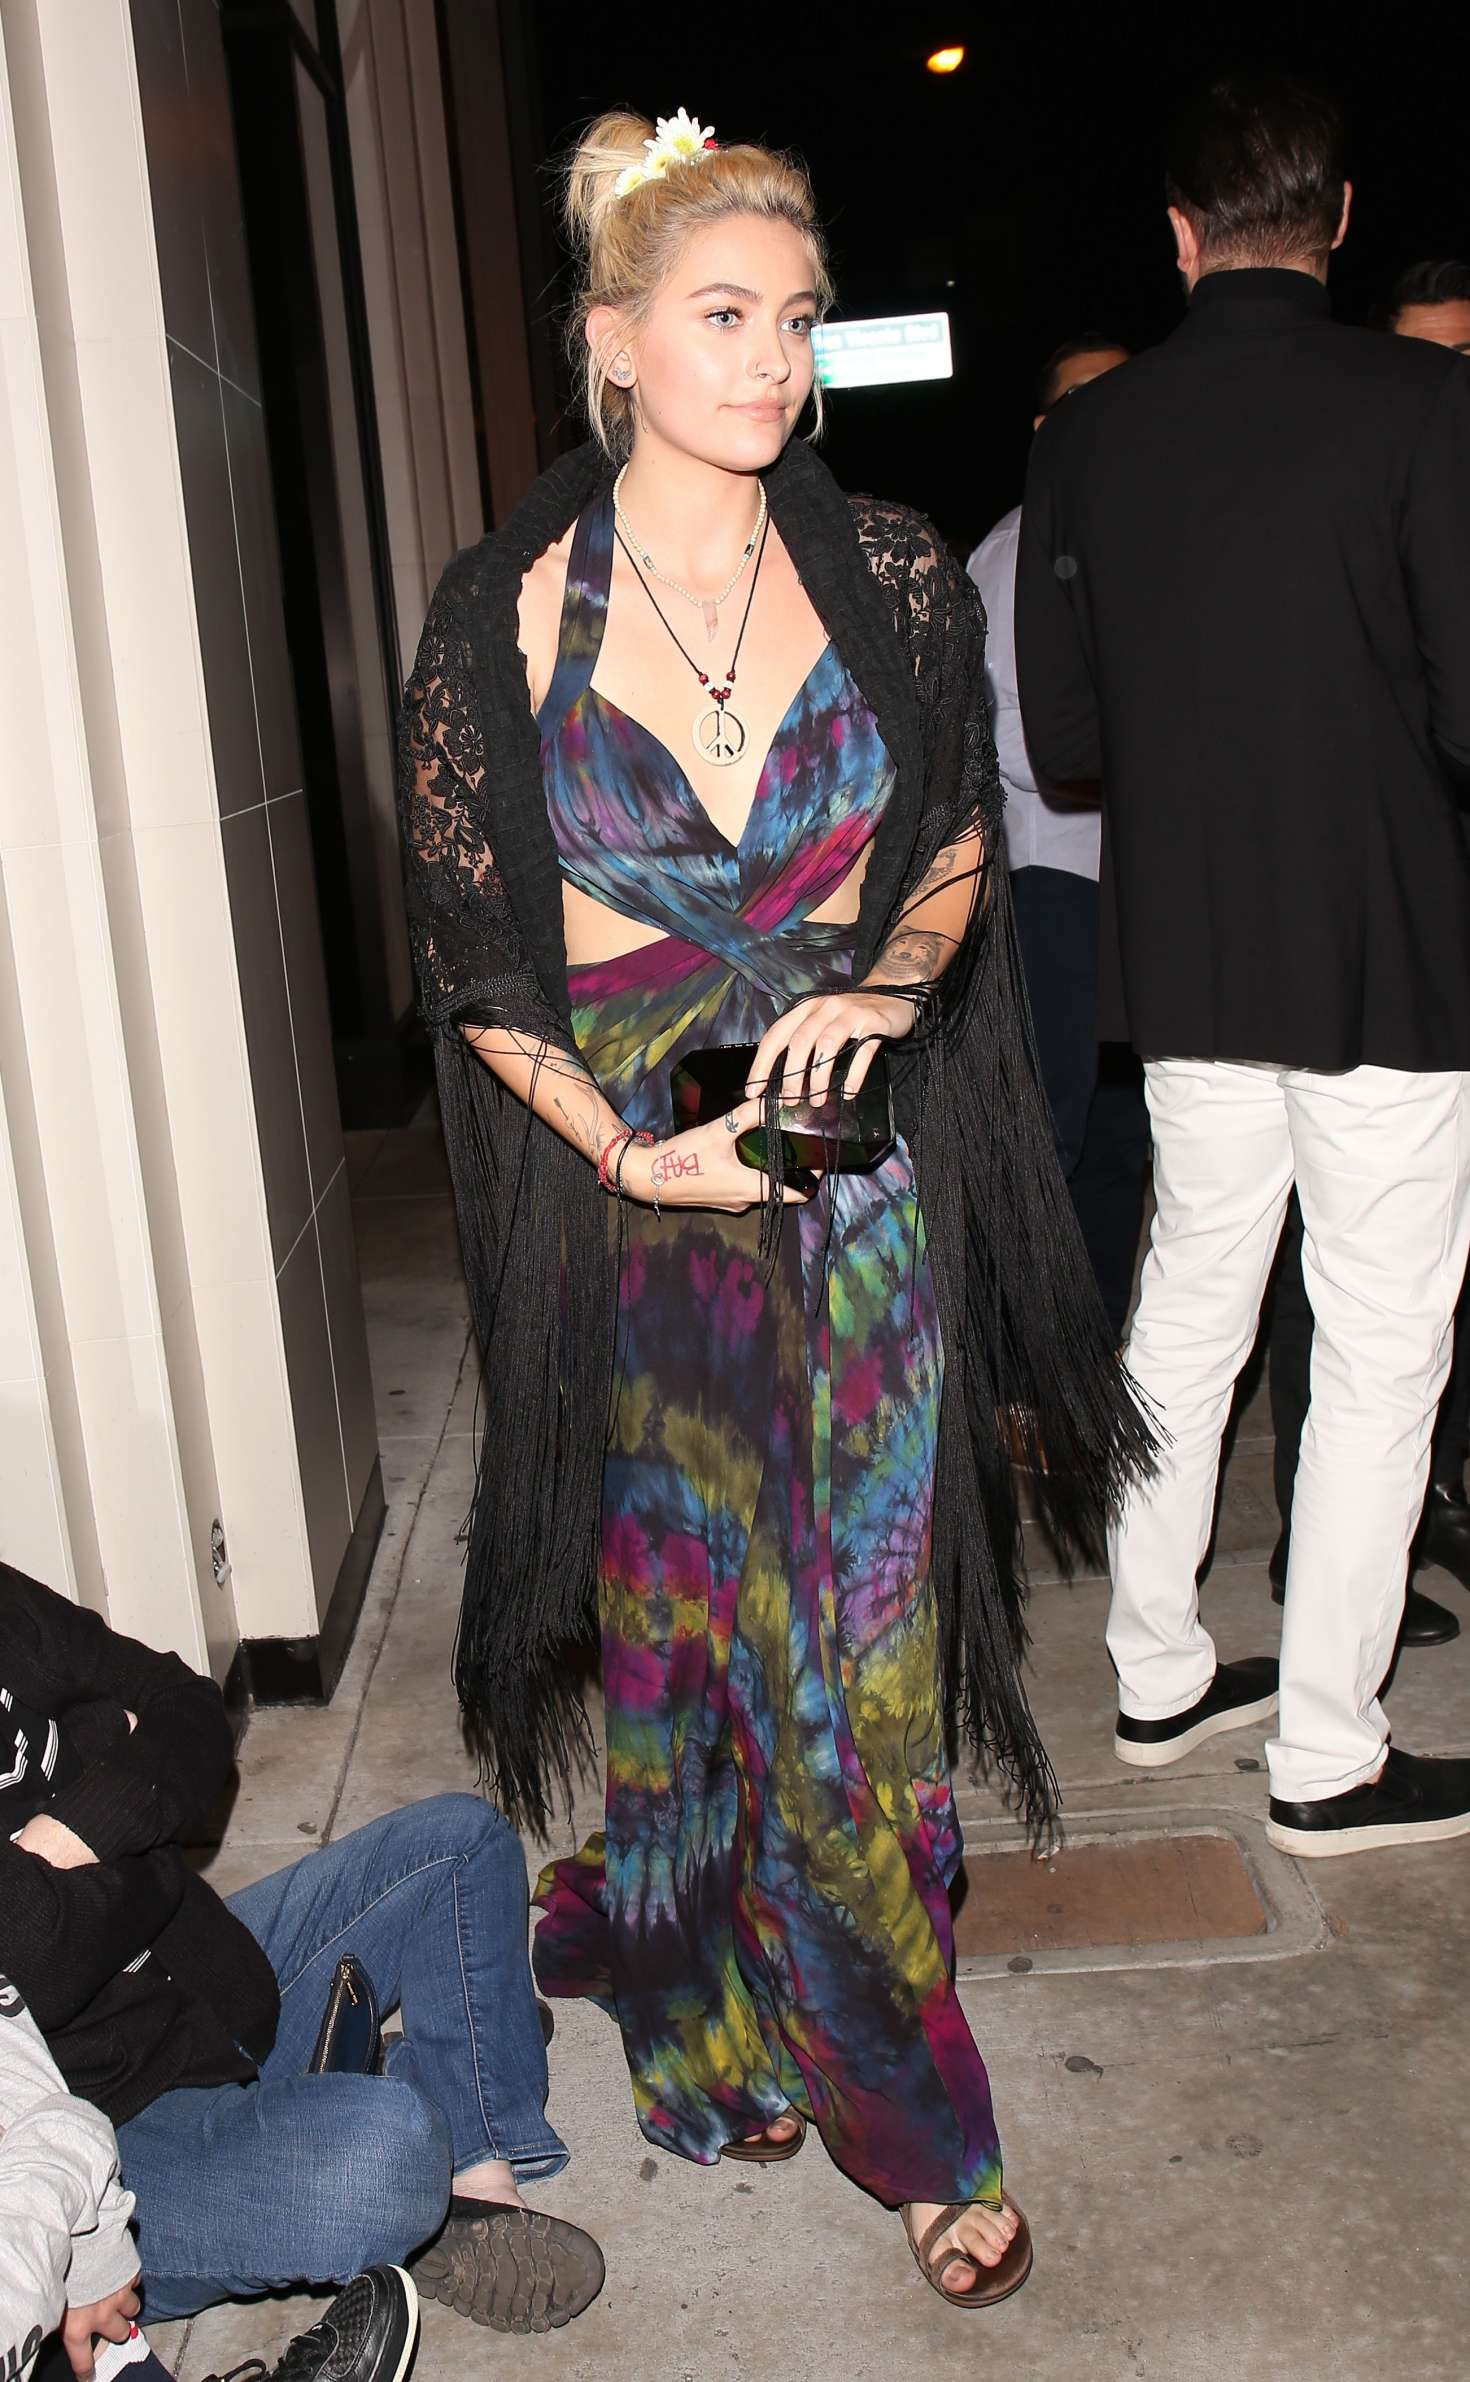 Paris Jackson at Republic Records Grammy After Party in LA